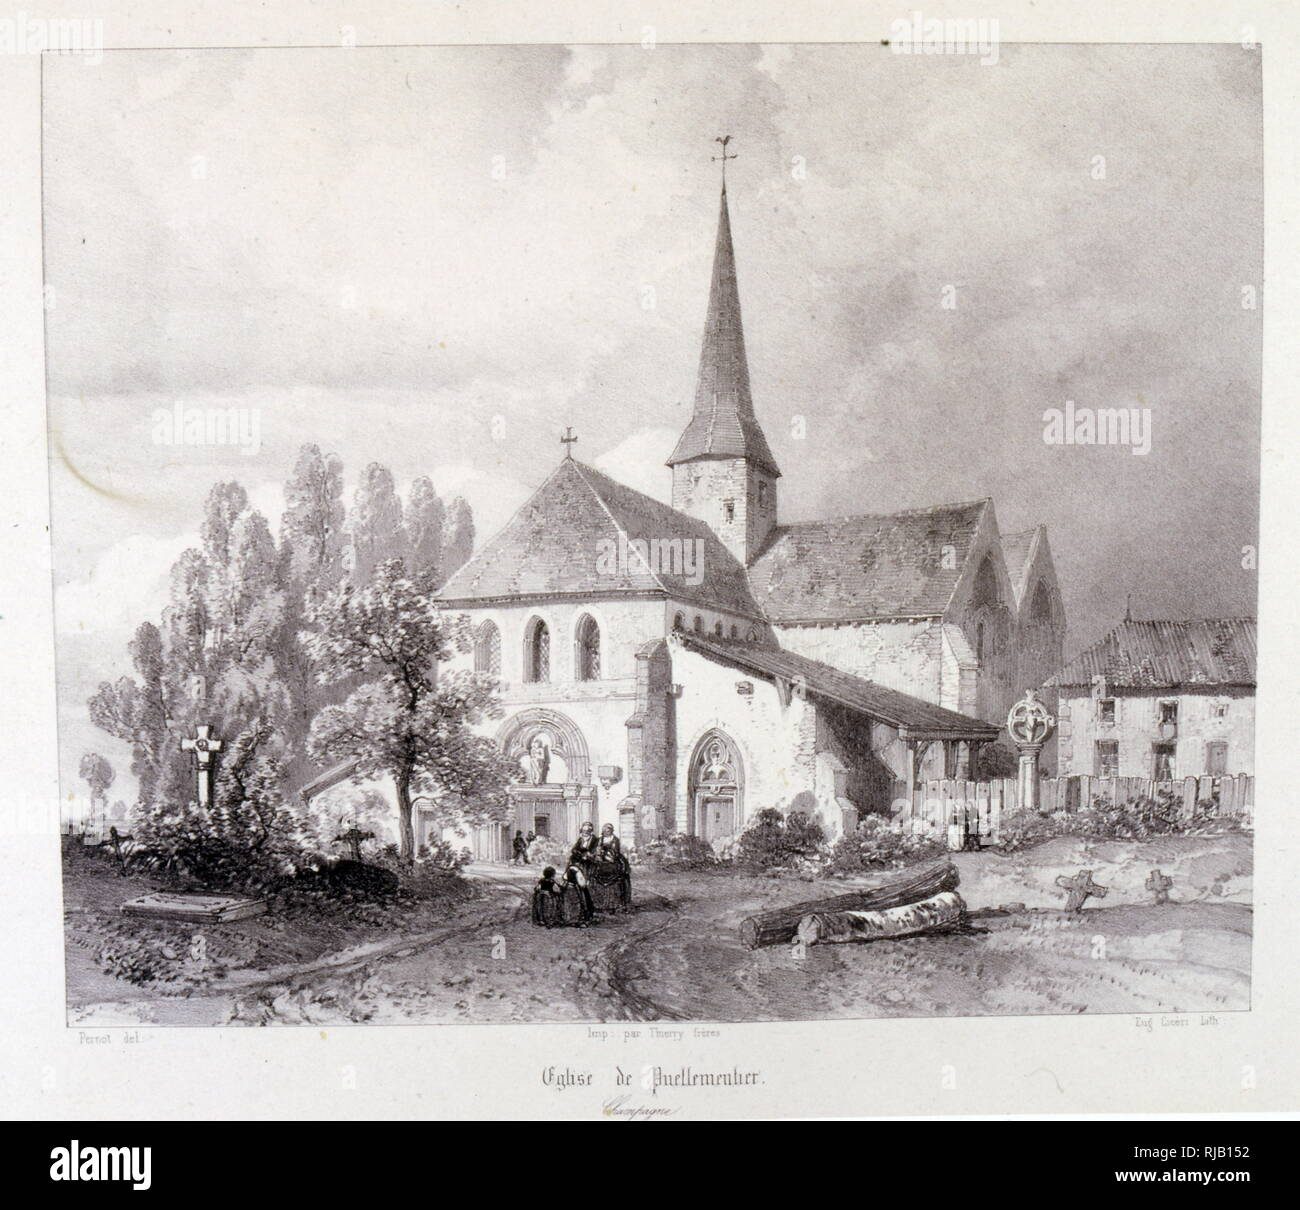 Eglise Notre-Dame-en-sa-Nativite, Puellemontier, FRance,1857, Drawing by Baron Isidore Taylor (1789 - 1879), French traveller and author. - Stock Image